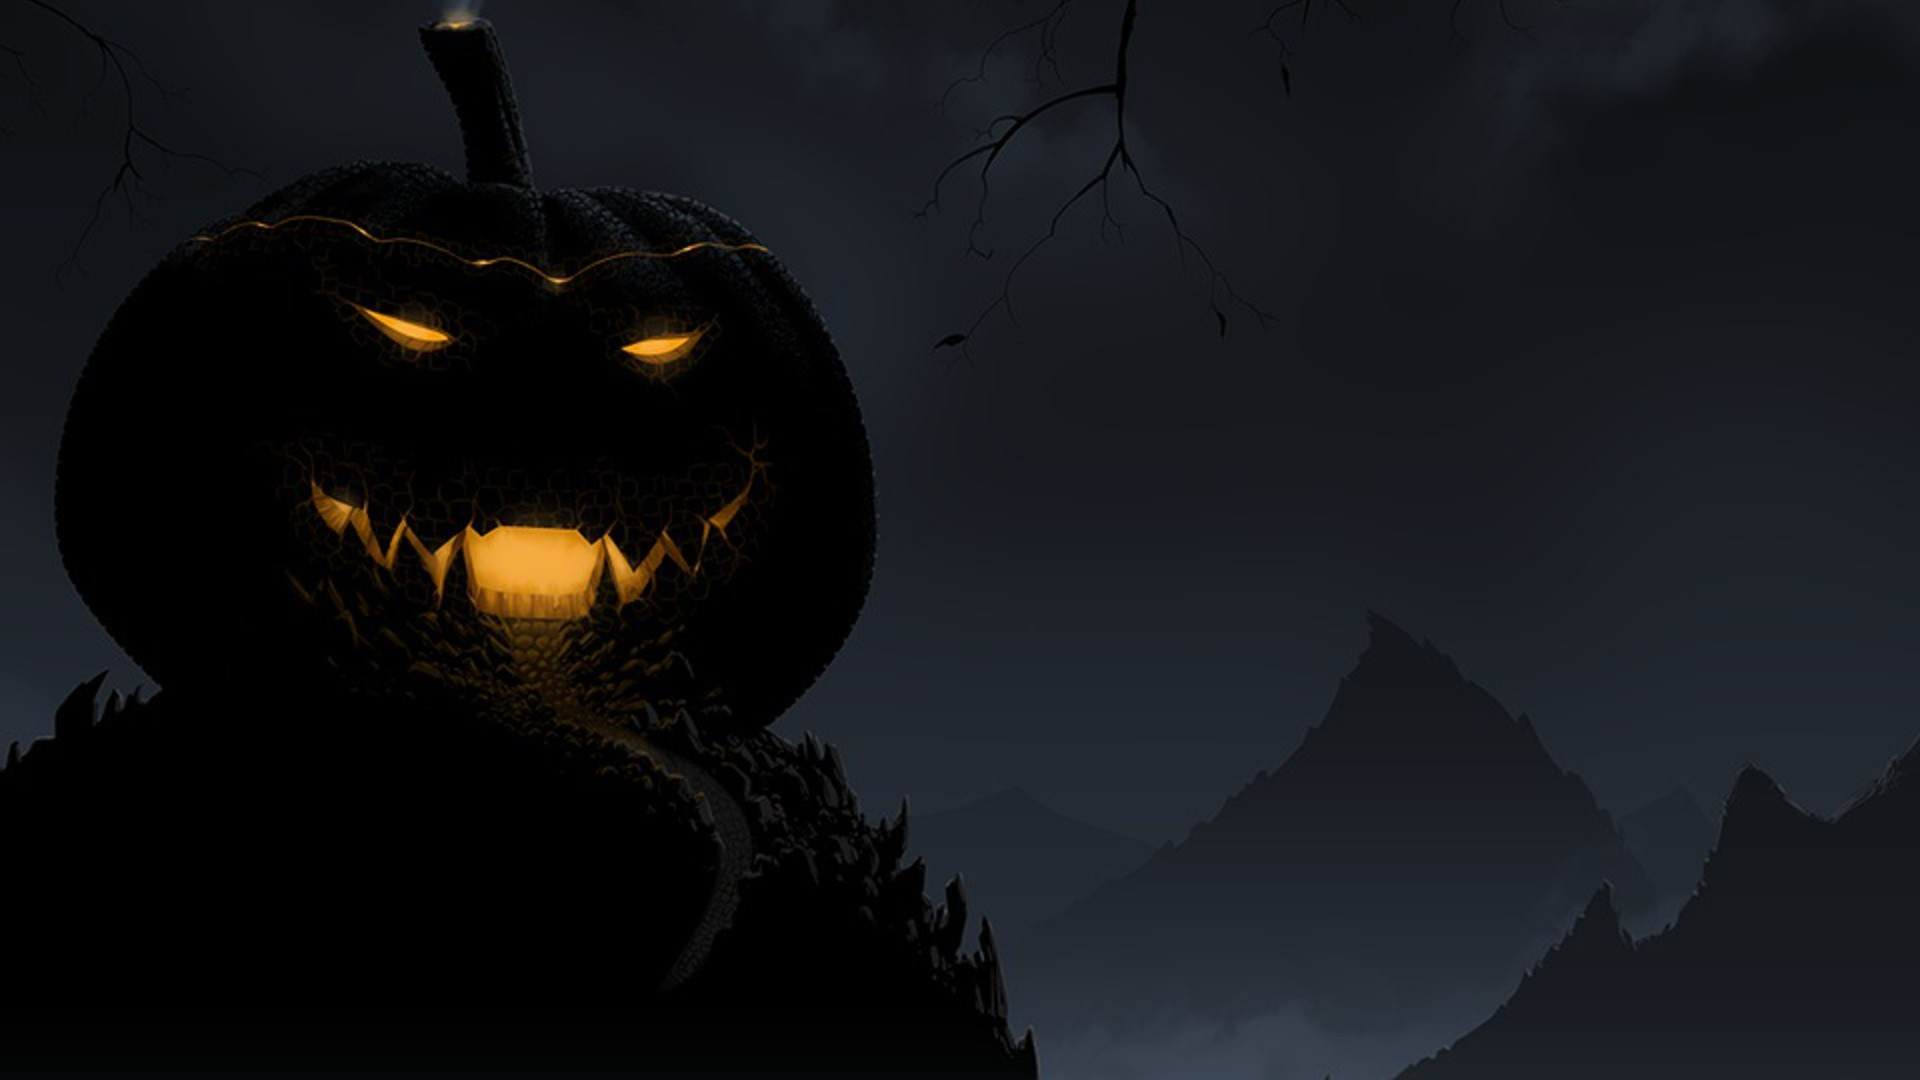 Res: 1920x1080, Collection of Awesome Halloween Wallpaper on HDWallpapers